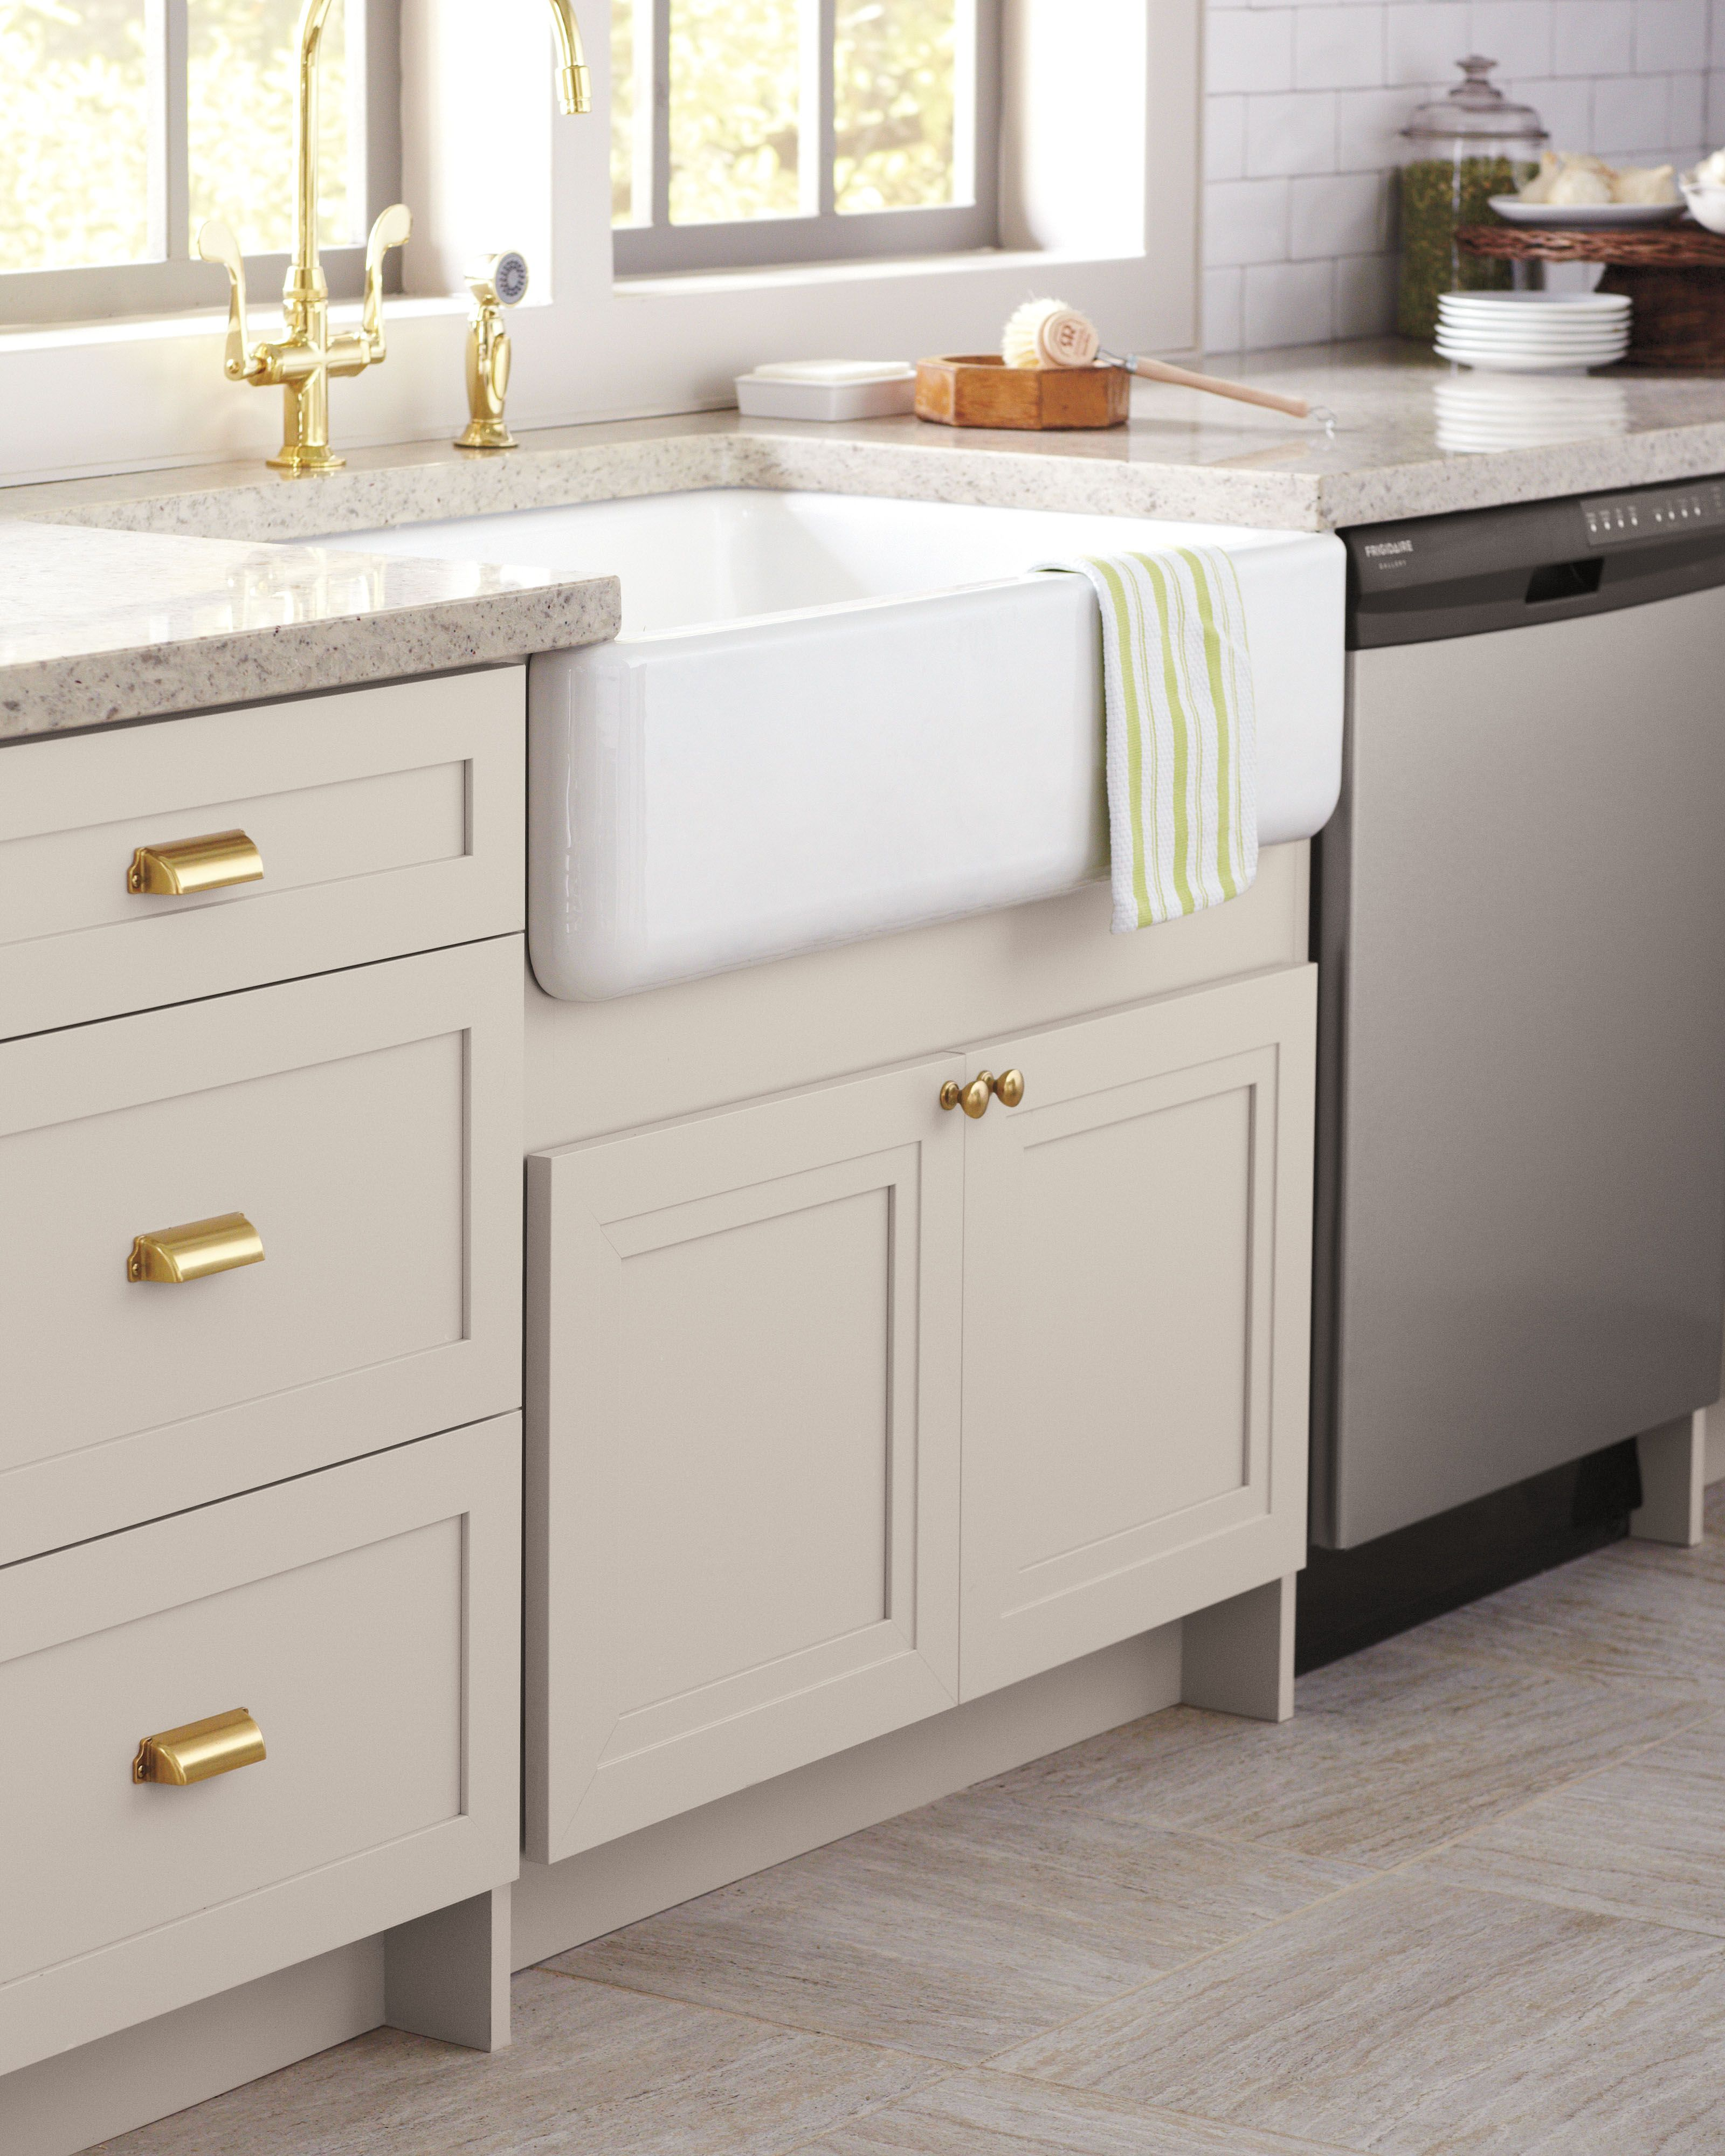 Modern Farmhouse Or Classic Country? Find Your Kitchen Style.